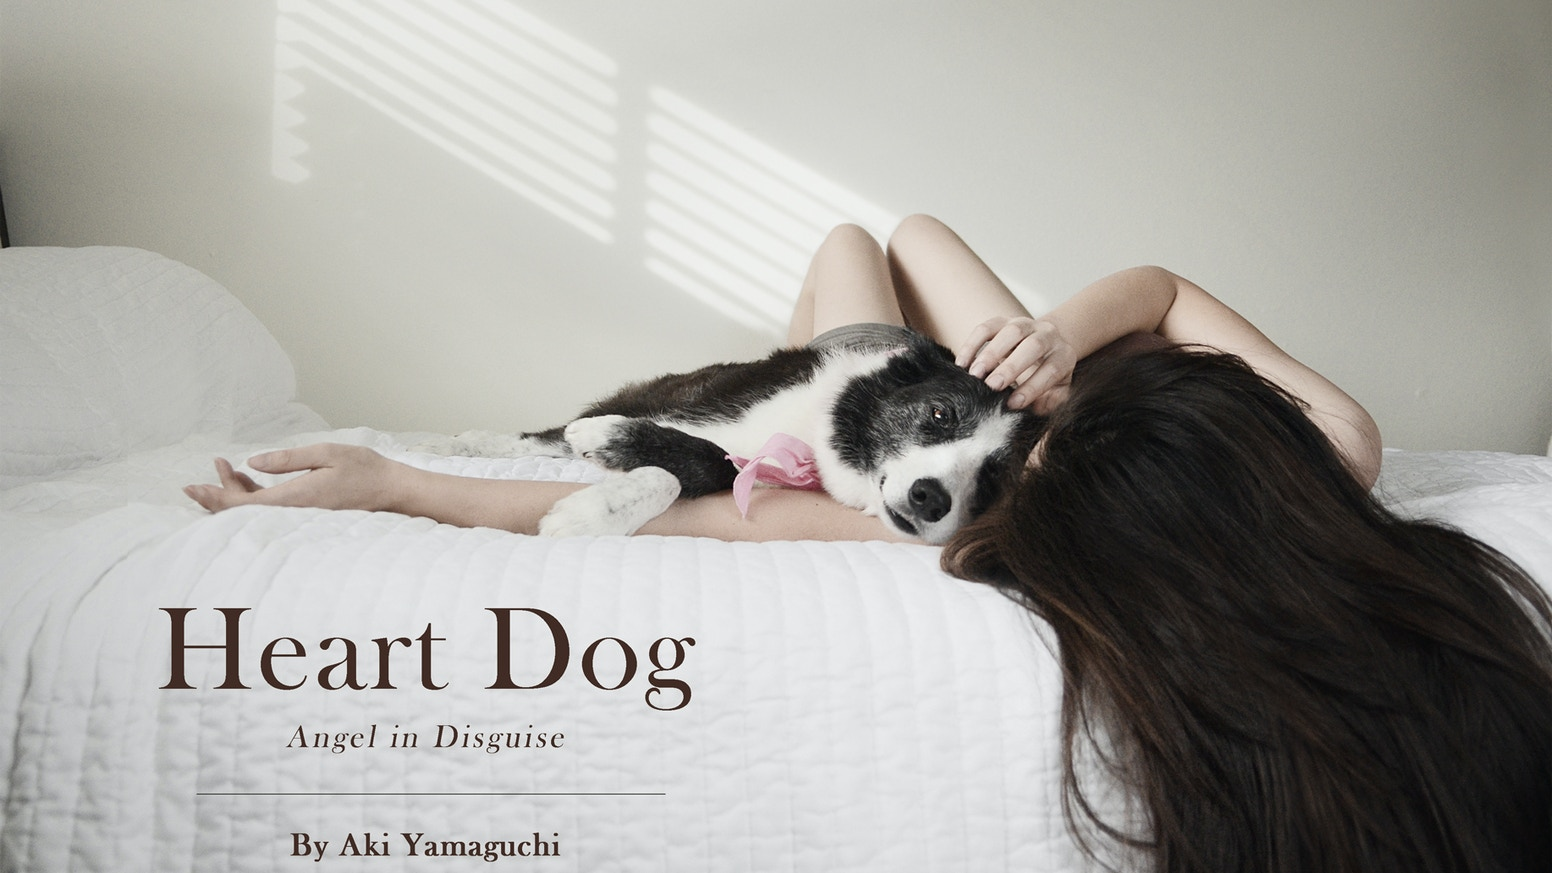 """Heart Dog—Angel in Disguise"" is the completed version of the photographic memoir that was self-published in 2014."